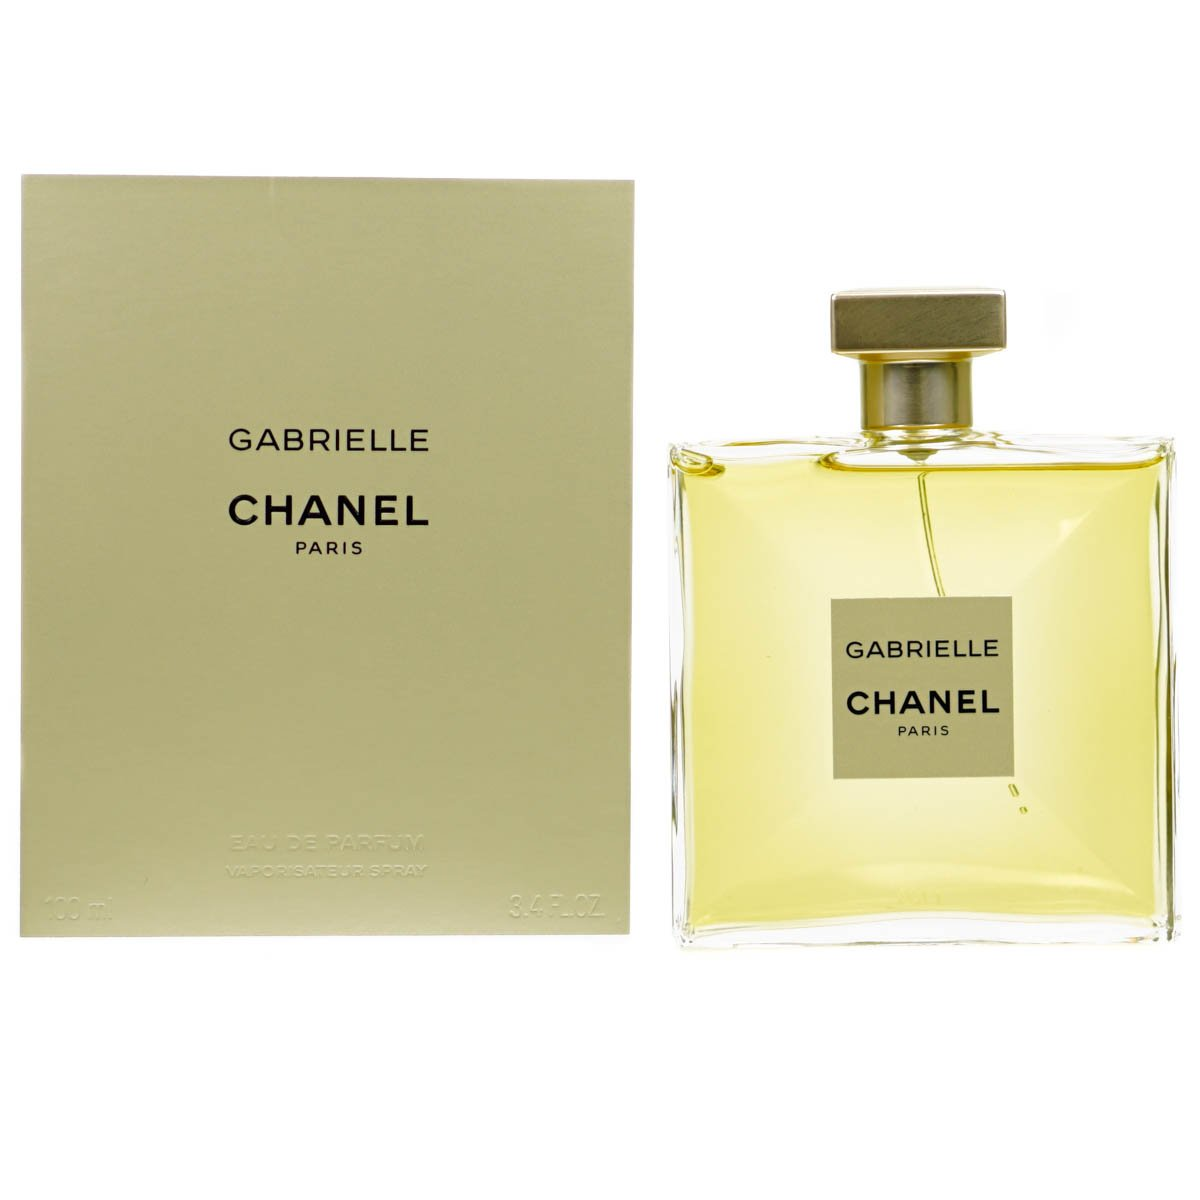 8db861f3c246c Gabrielle by Chanel for Women - Eau de Parfum